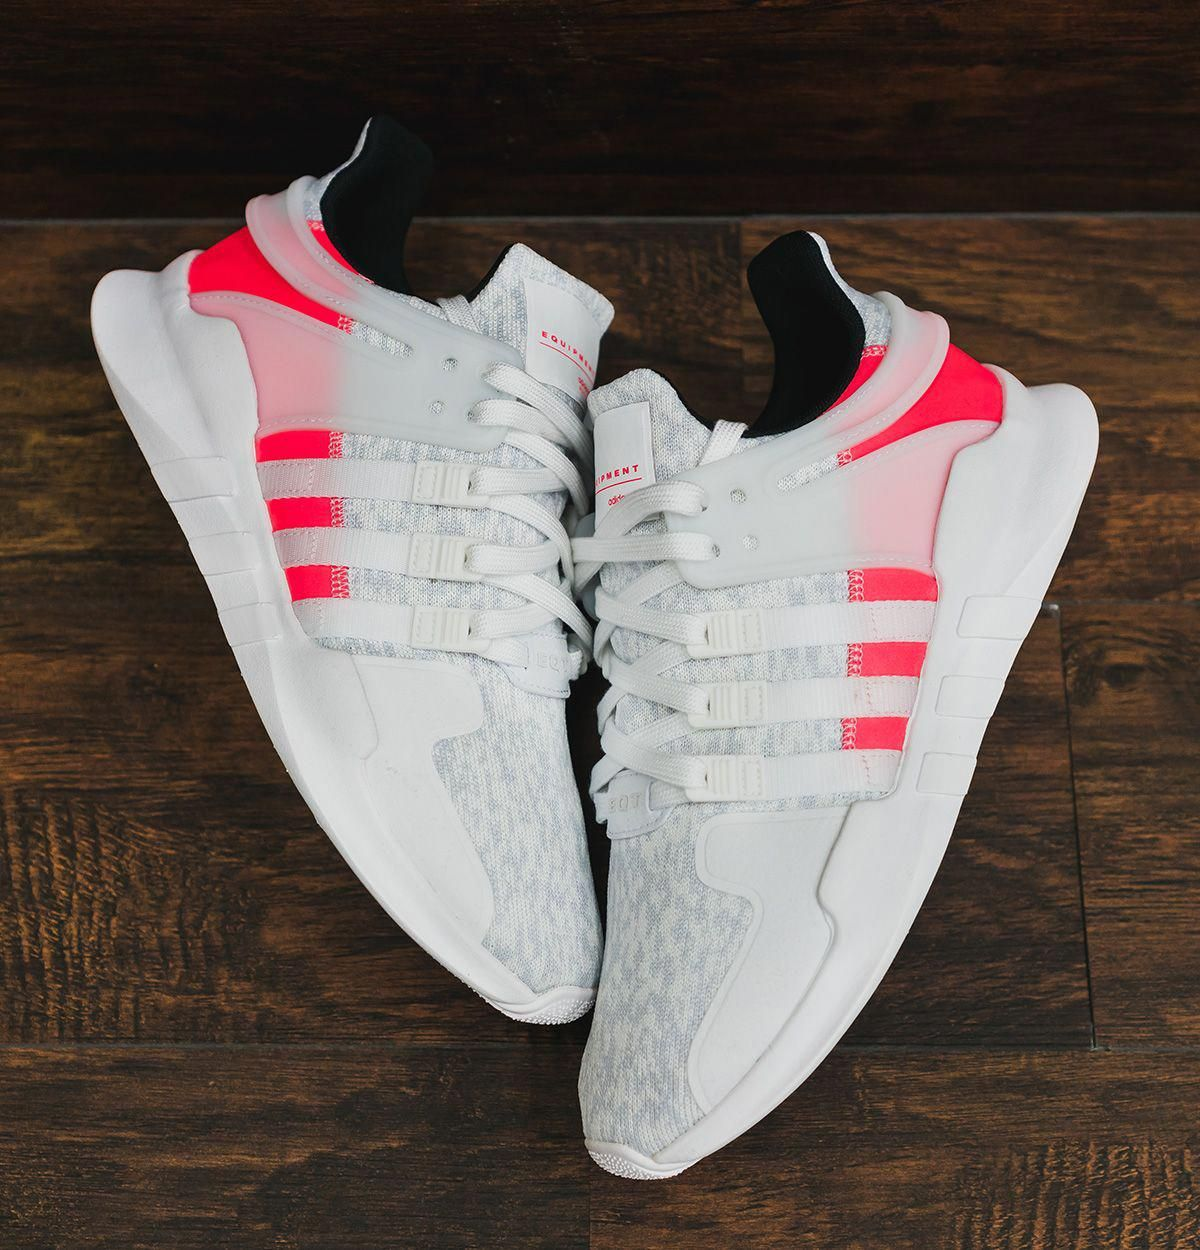 buy popular 5b8fb 31158 14 adidas EQT Releases for Week 12 of 2017 - EU Kicks Sneaker Magazine ,